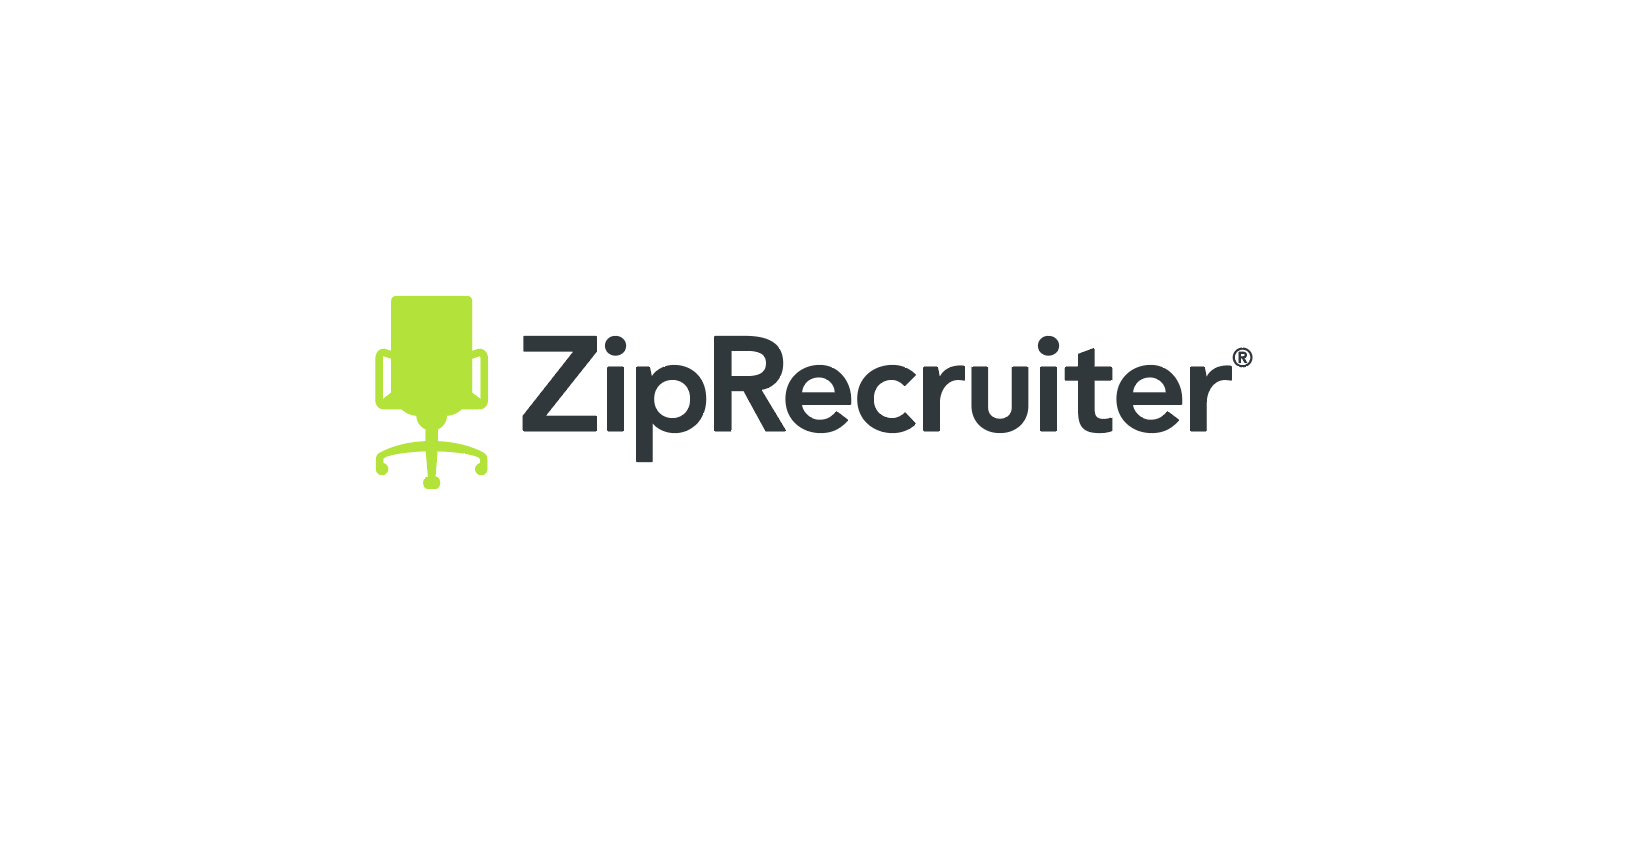 Search for jobs hiring in your area using ZipRecruiter's job search engine - the best way to find a job. Find jobs hiring near you and apply with just 1 click.